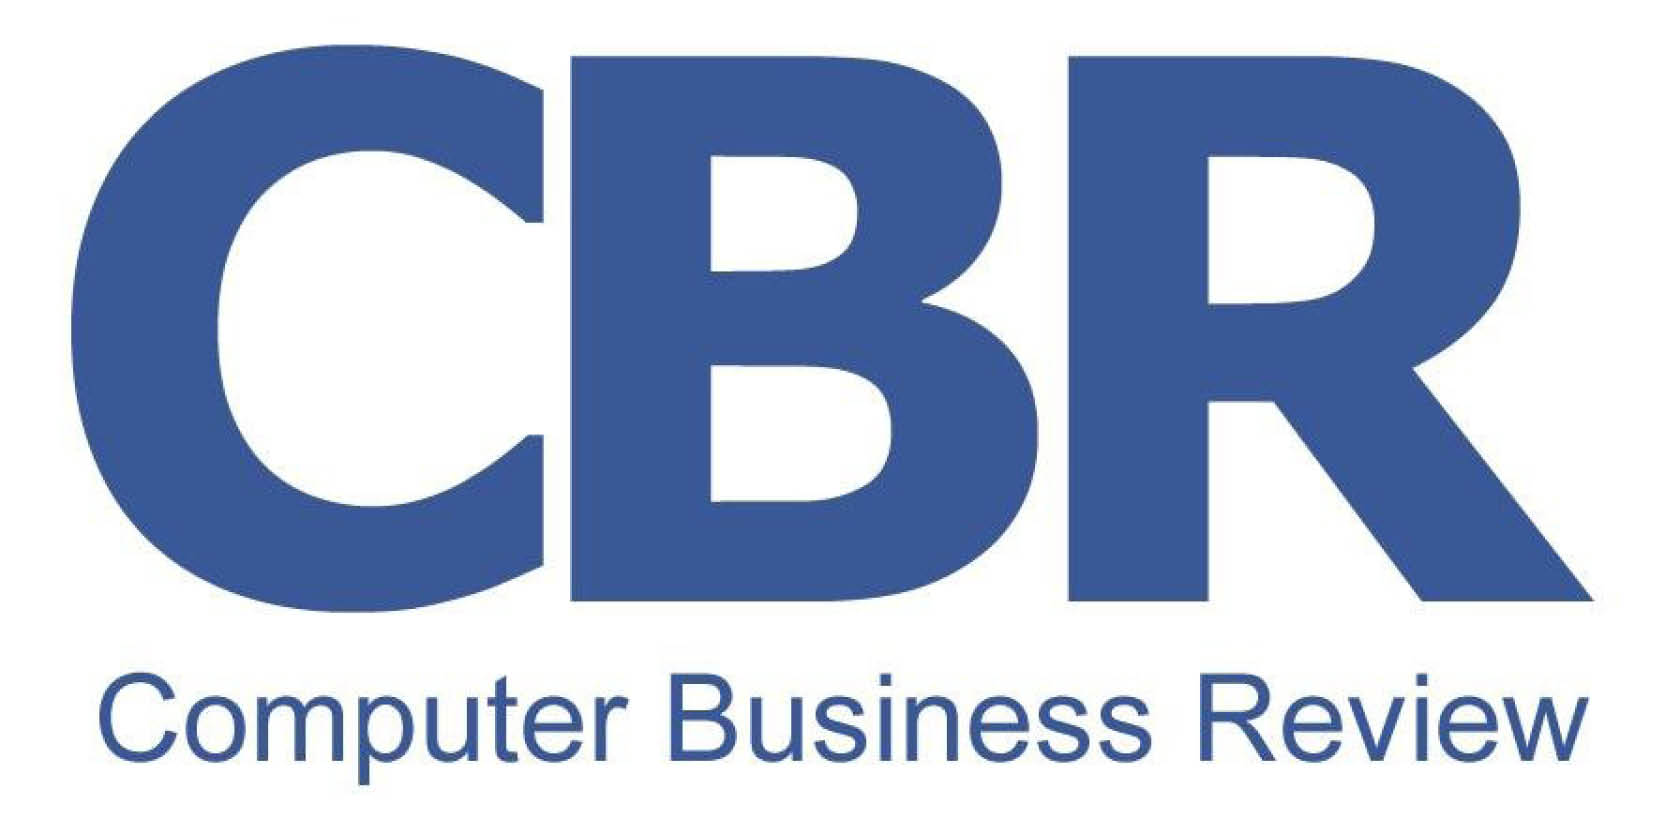 ComputerBusinessReview logo-1